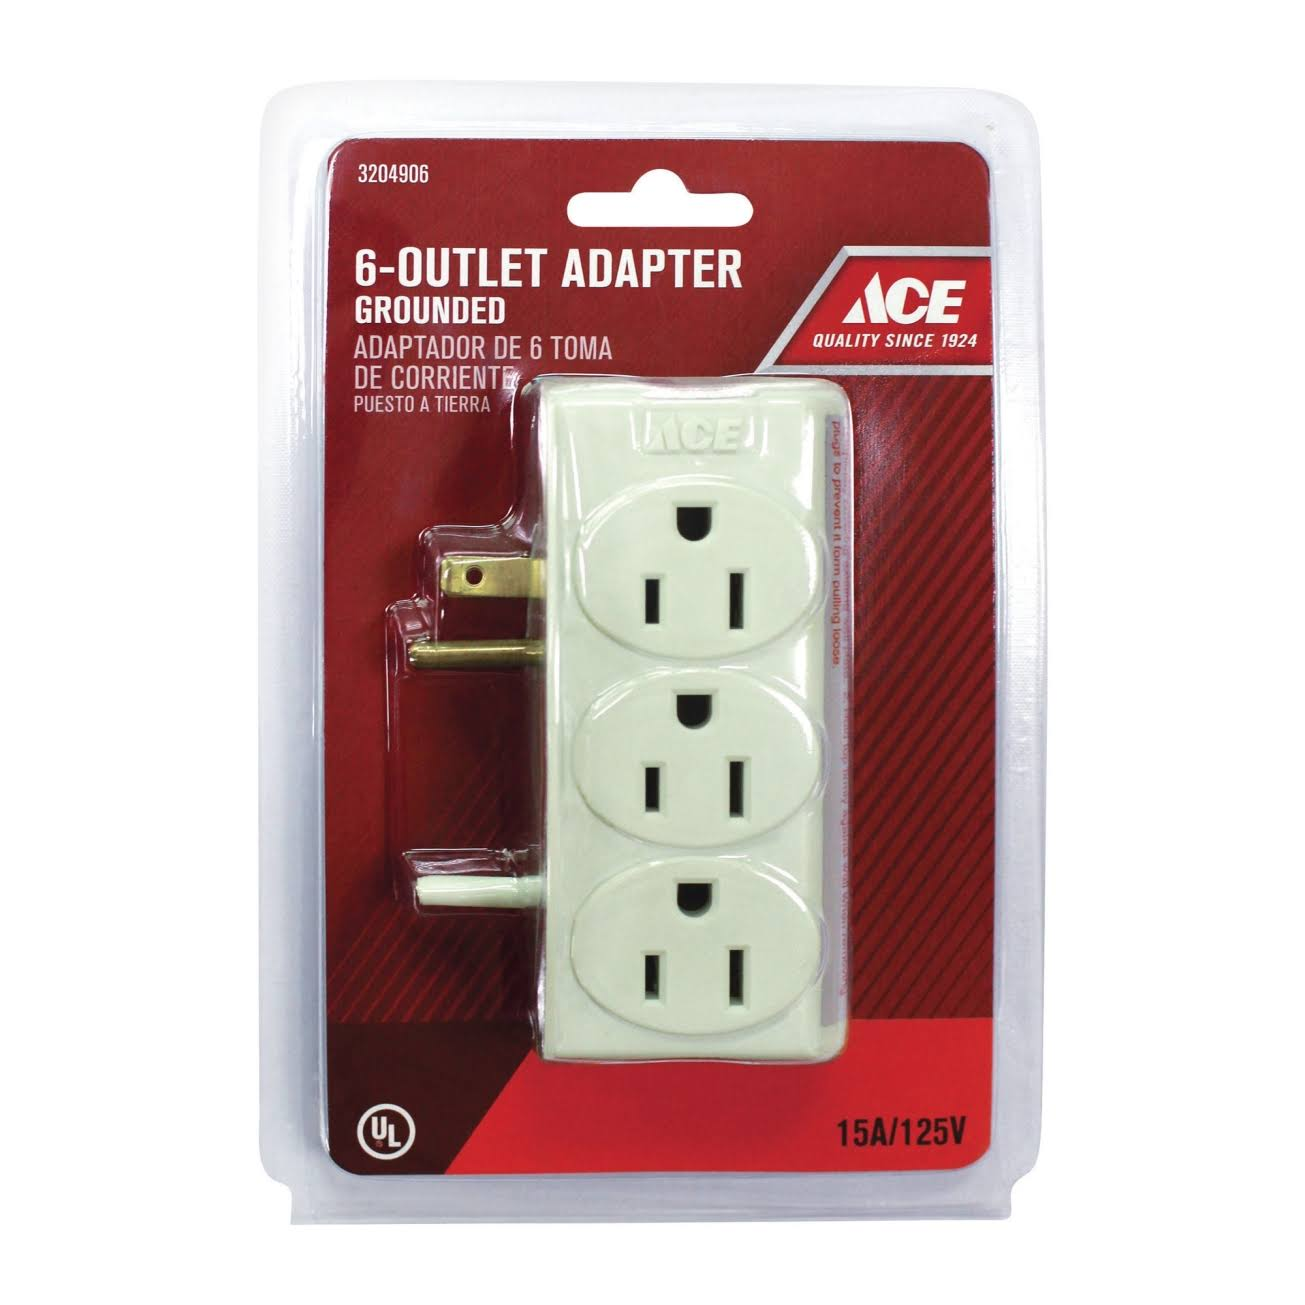 Ace 6-Outlet Adapter